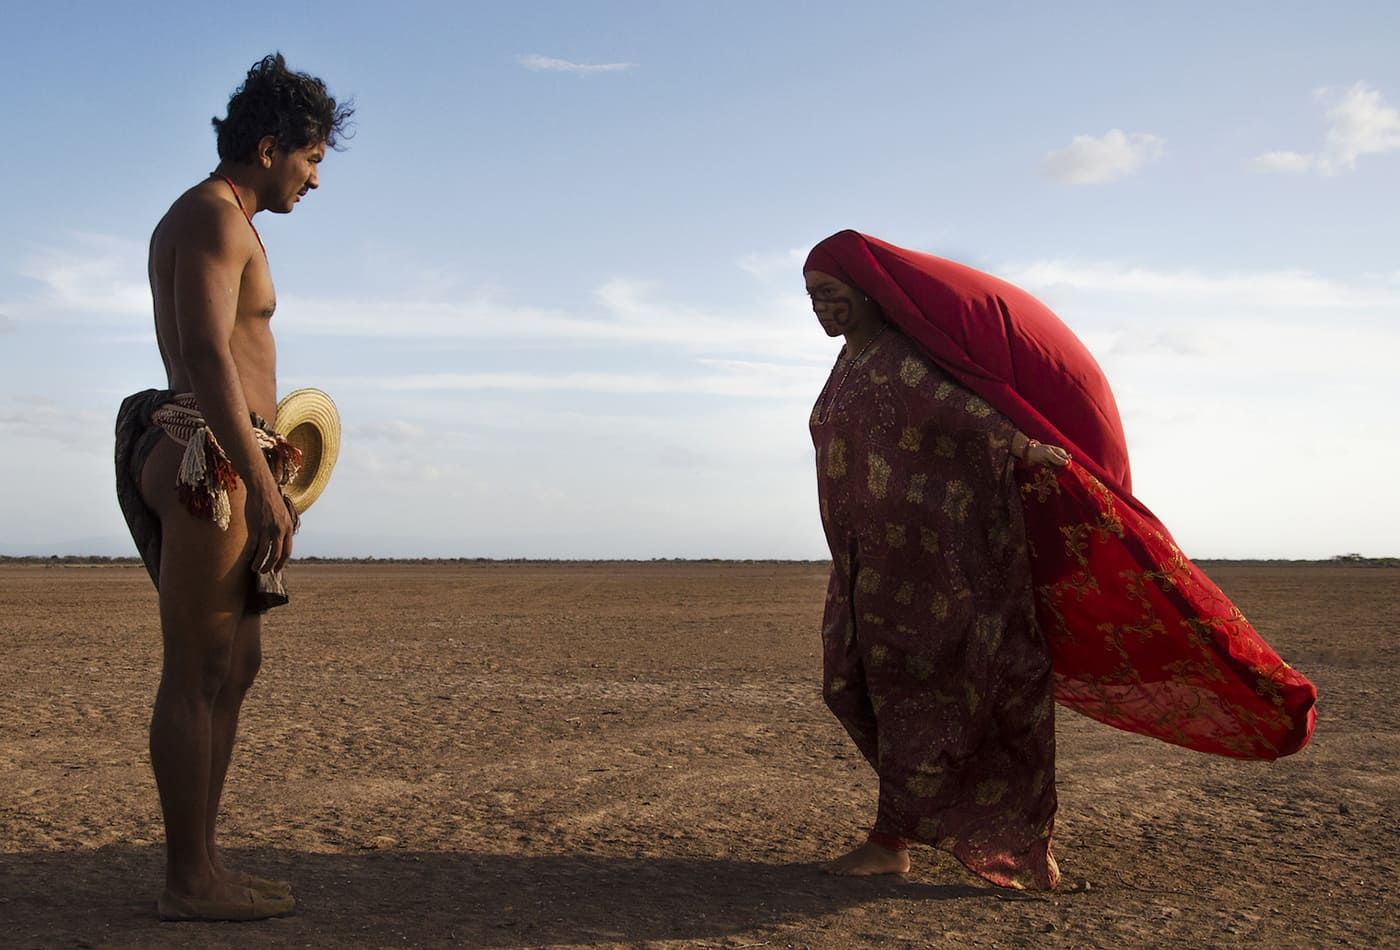 TRAILER: This Colombian Drama Is the Story of an Indigenous Family Caught in the Drug Trade